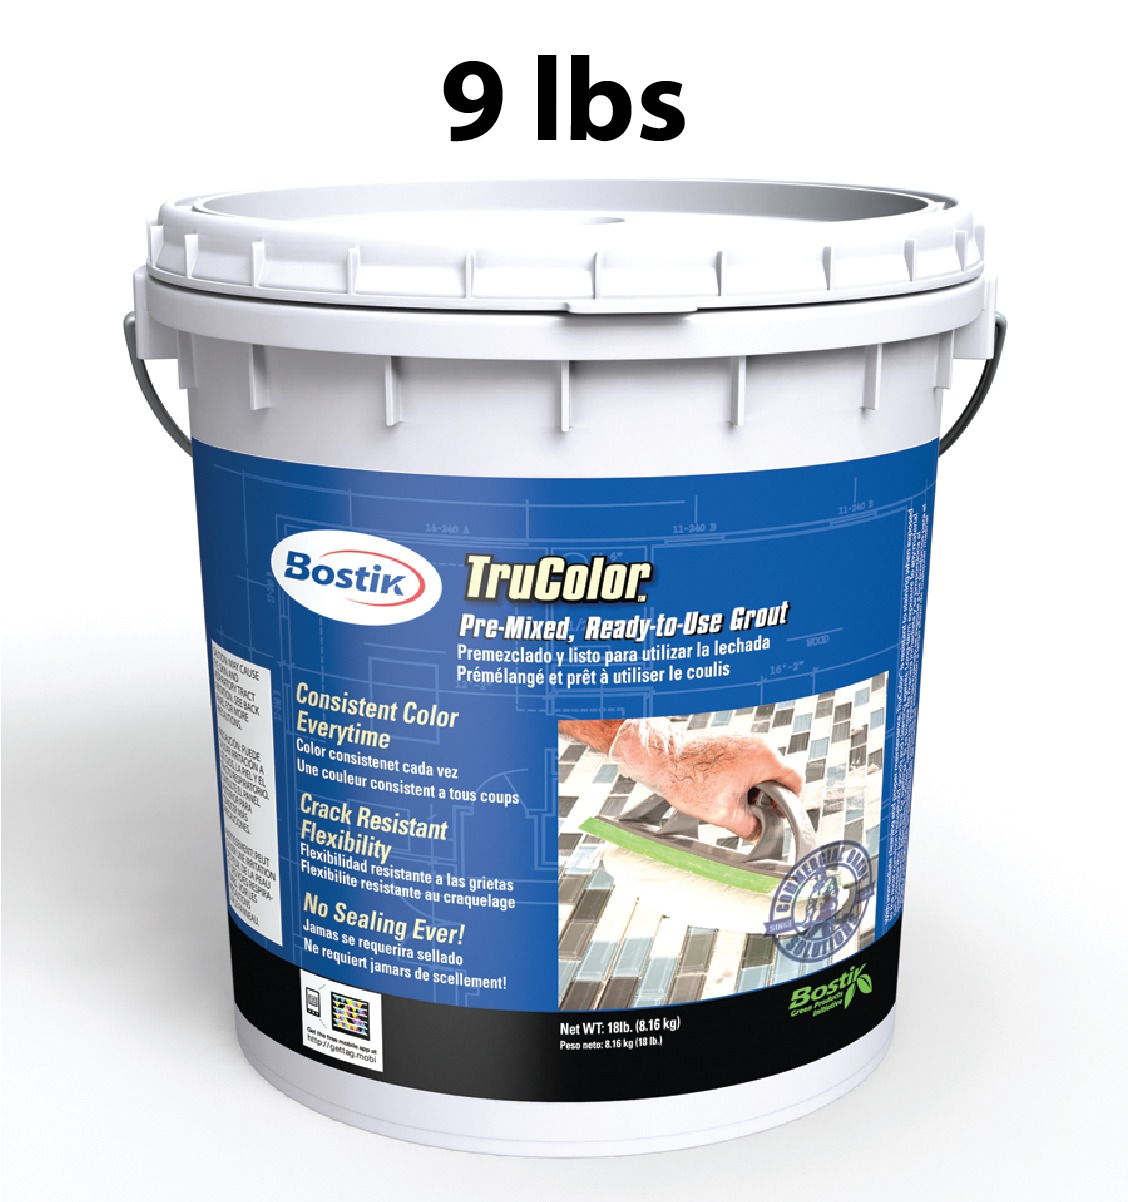 Bostik Trucolor Grout 9 Lb Bucket